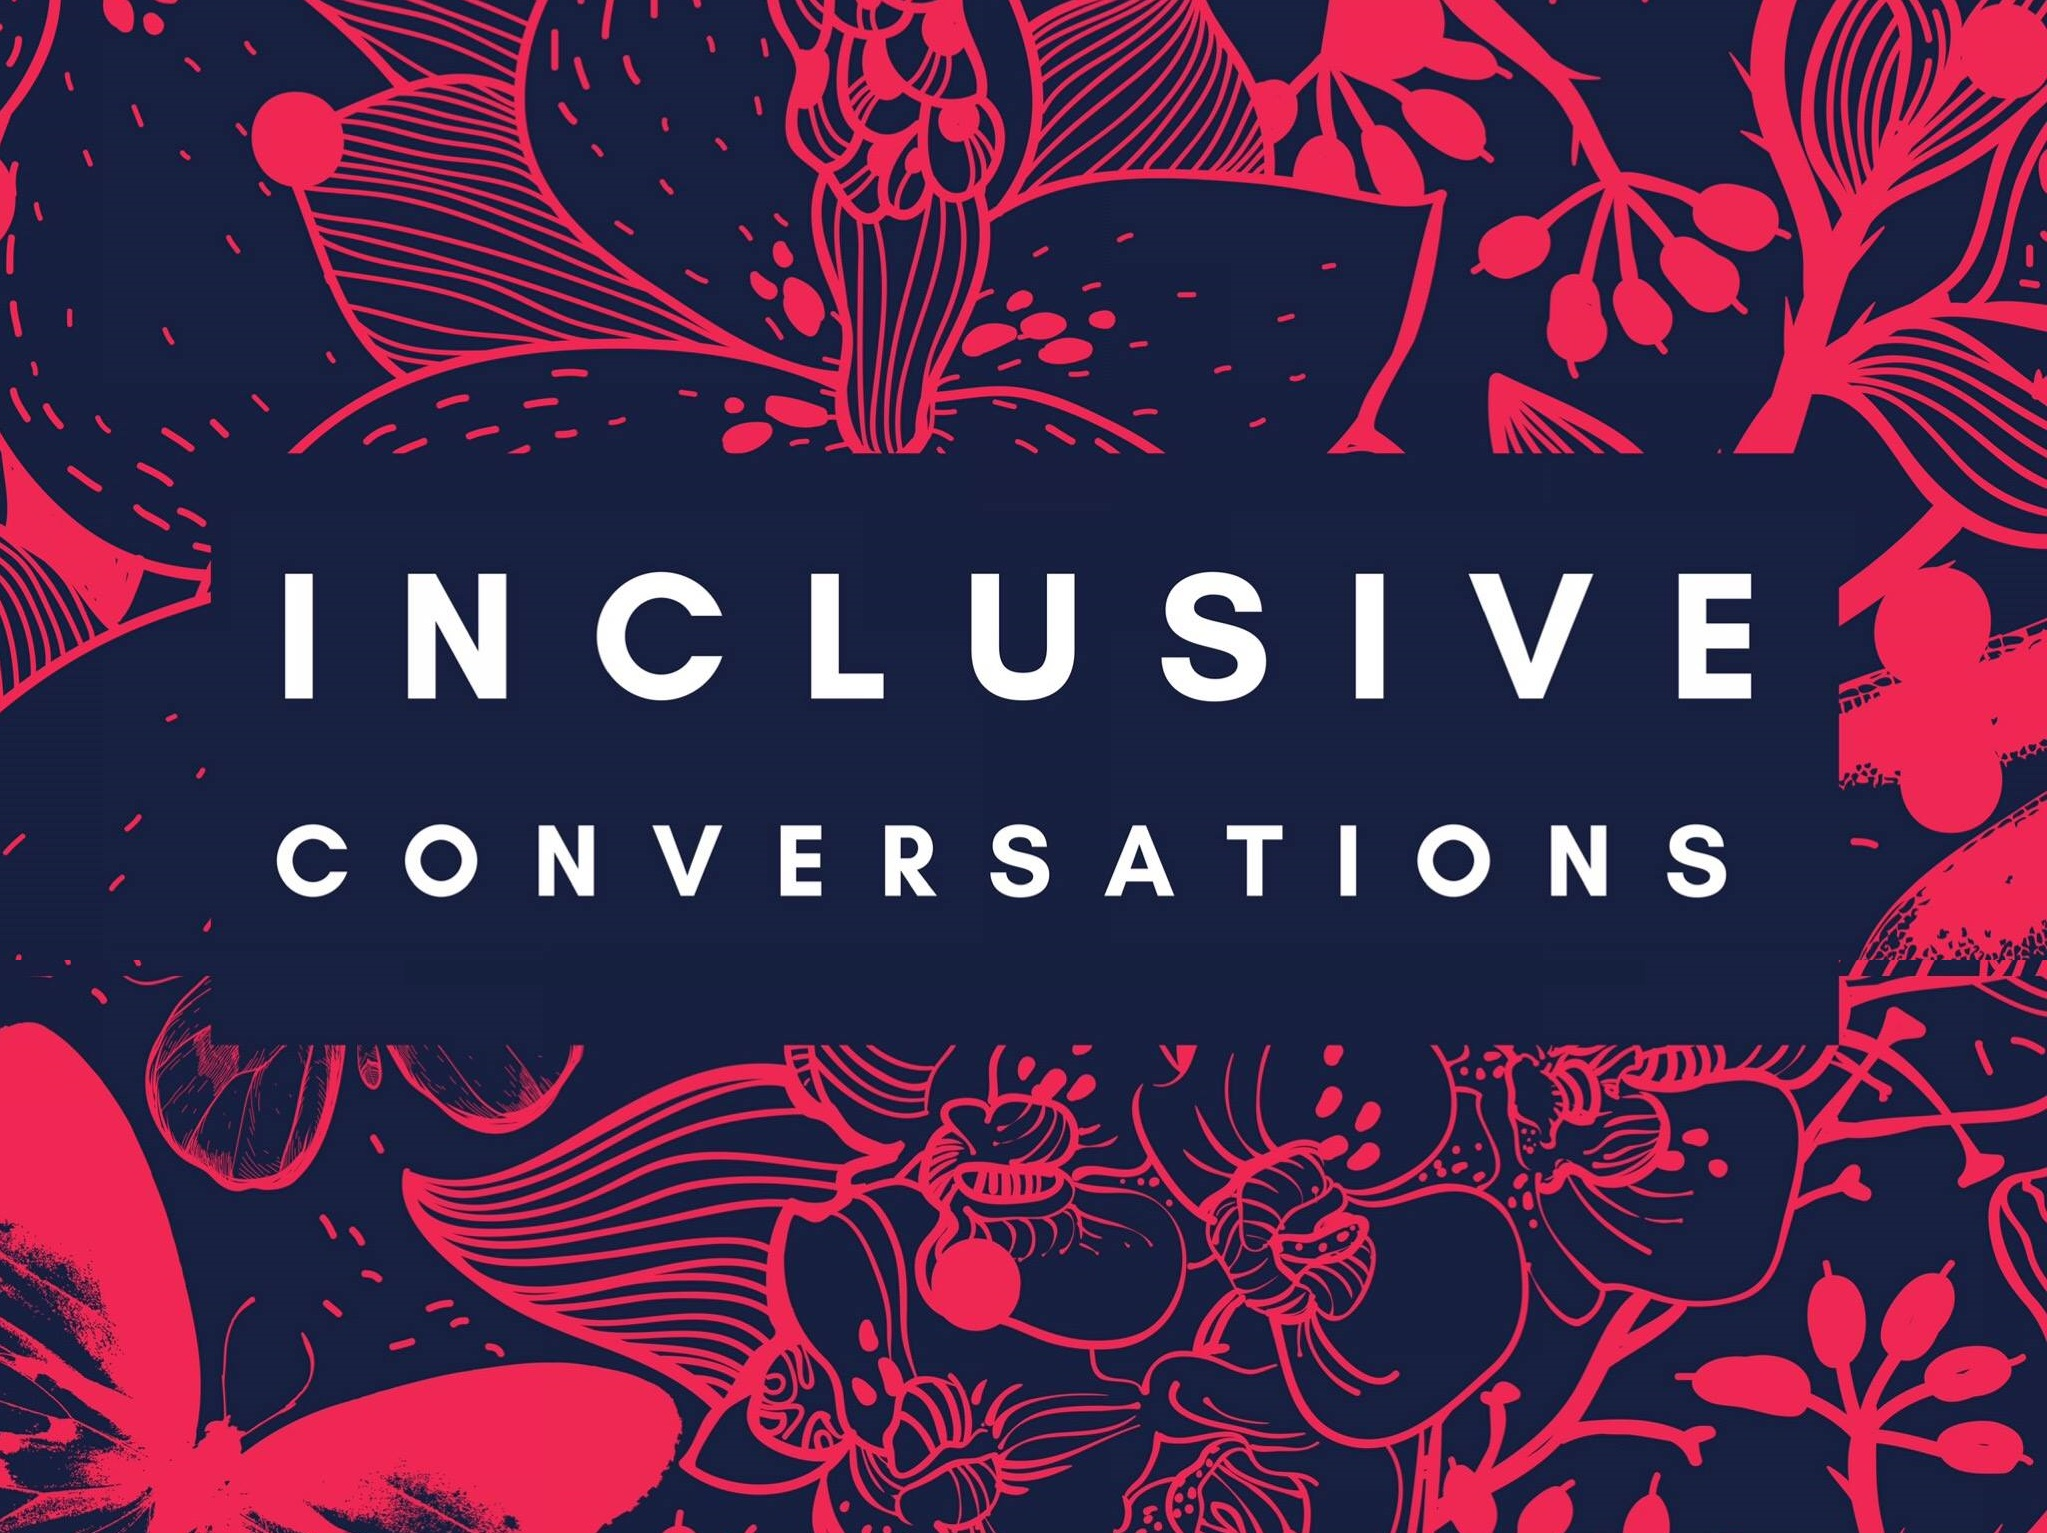 Inclusive Convo image from FB event.jpg